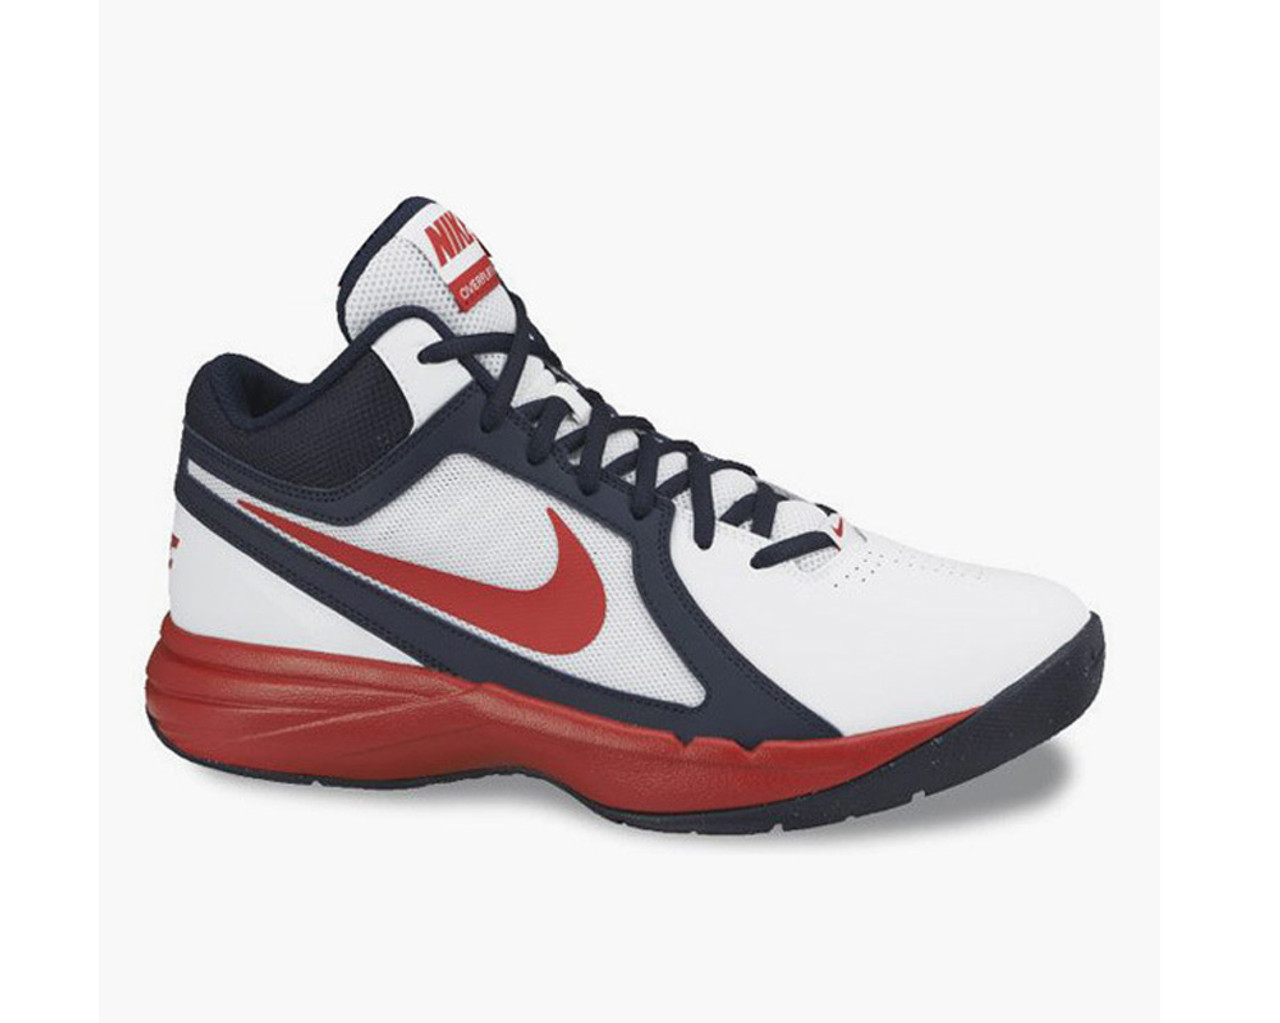 913d4a1f4089 Nike Men s The Overplay VIII Basketball Shoes White Red Blue - Shop now